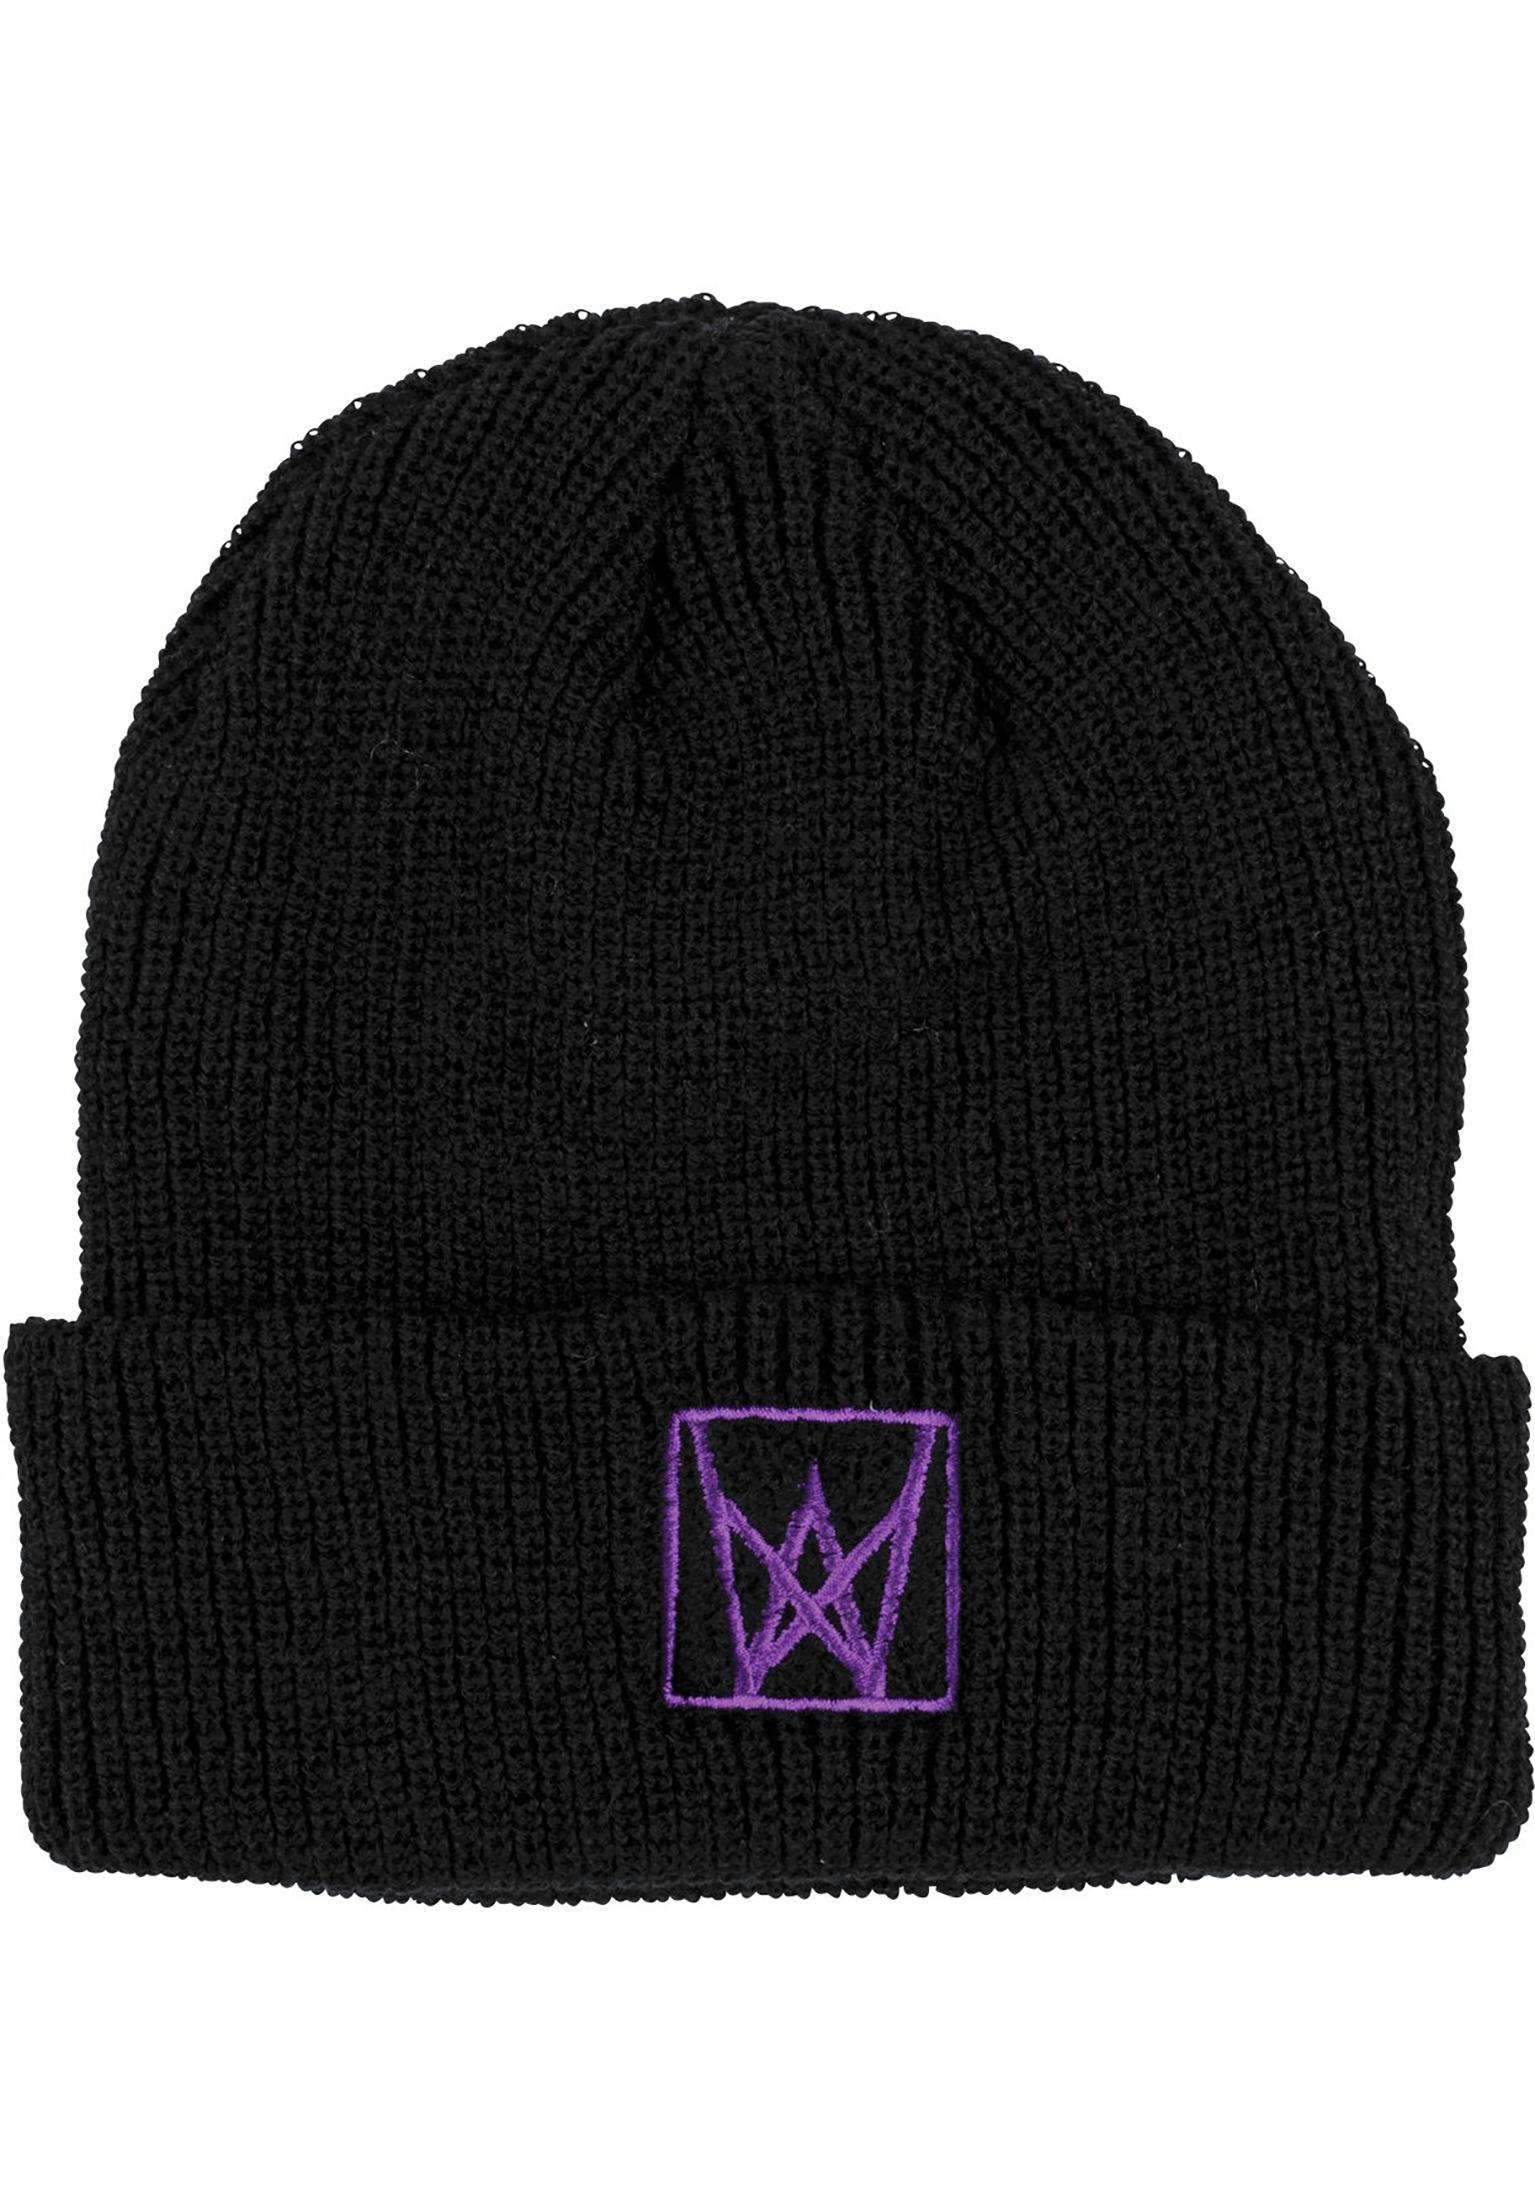 b15dcdfd361 Icon Cuff Welcome Beanies in black-purple for Men